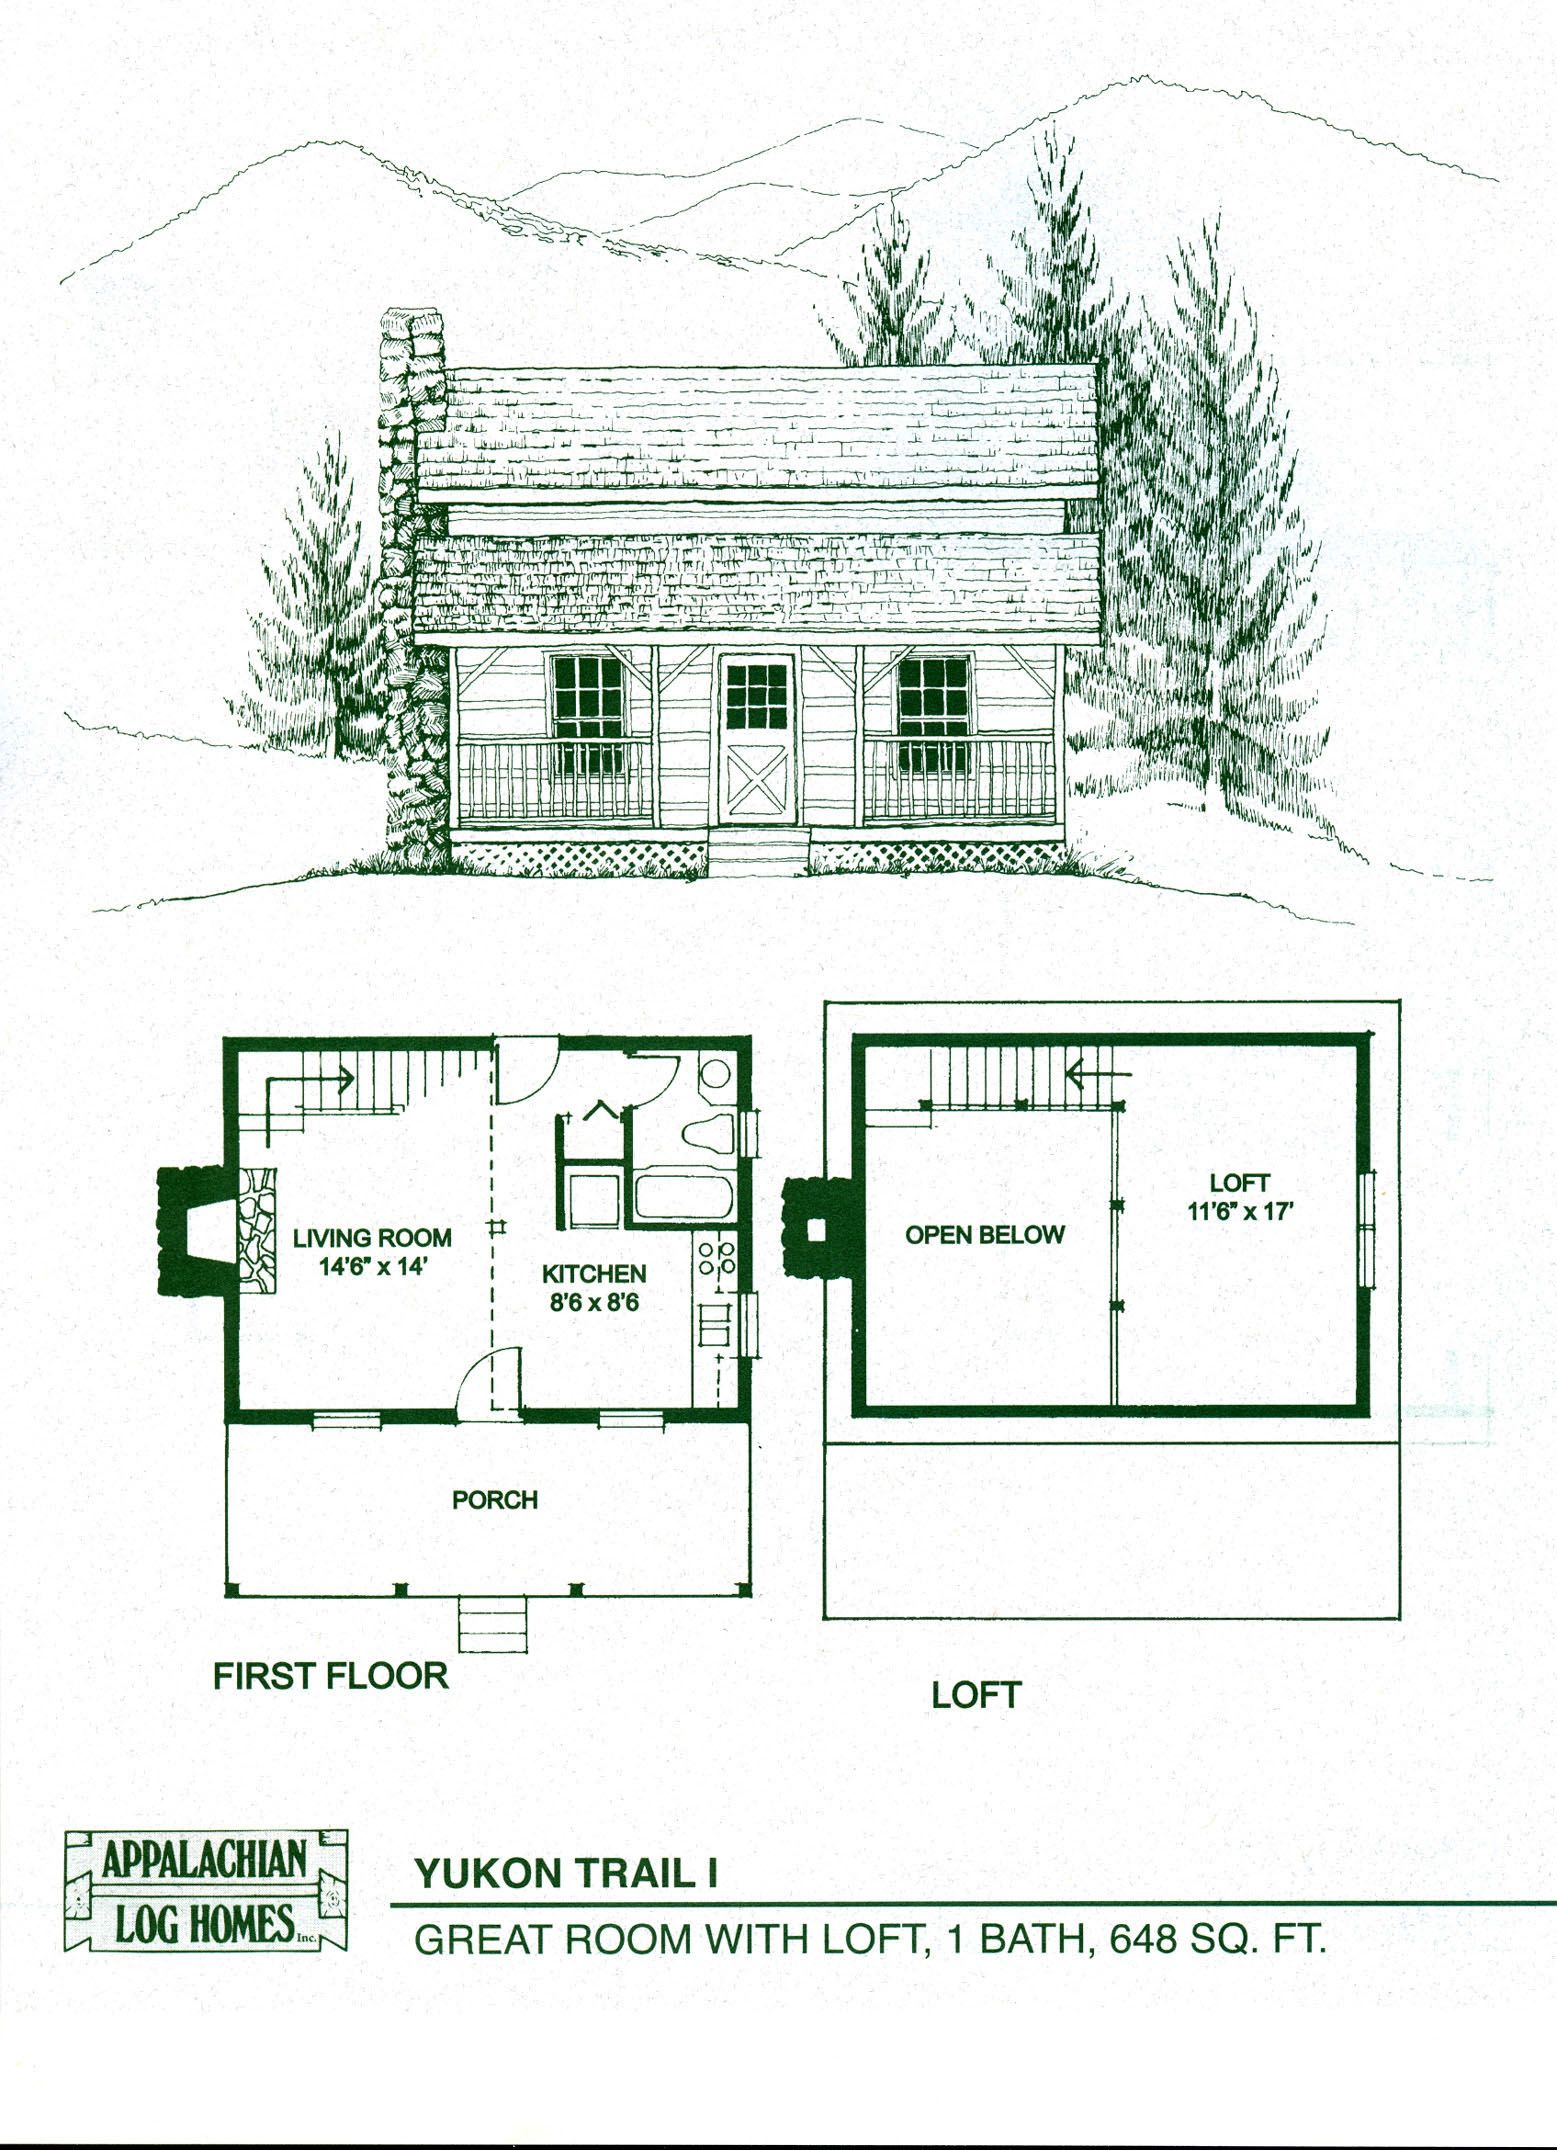 log home floor plans log cabin kits appalachian log homes - Cottage Floor Plans